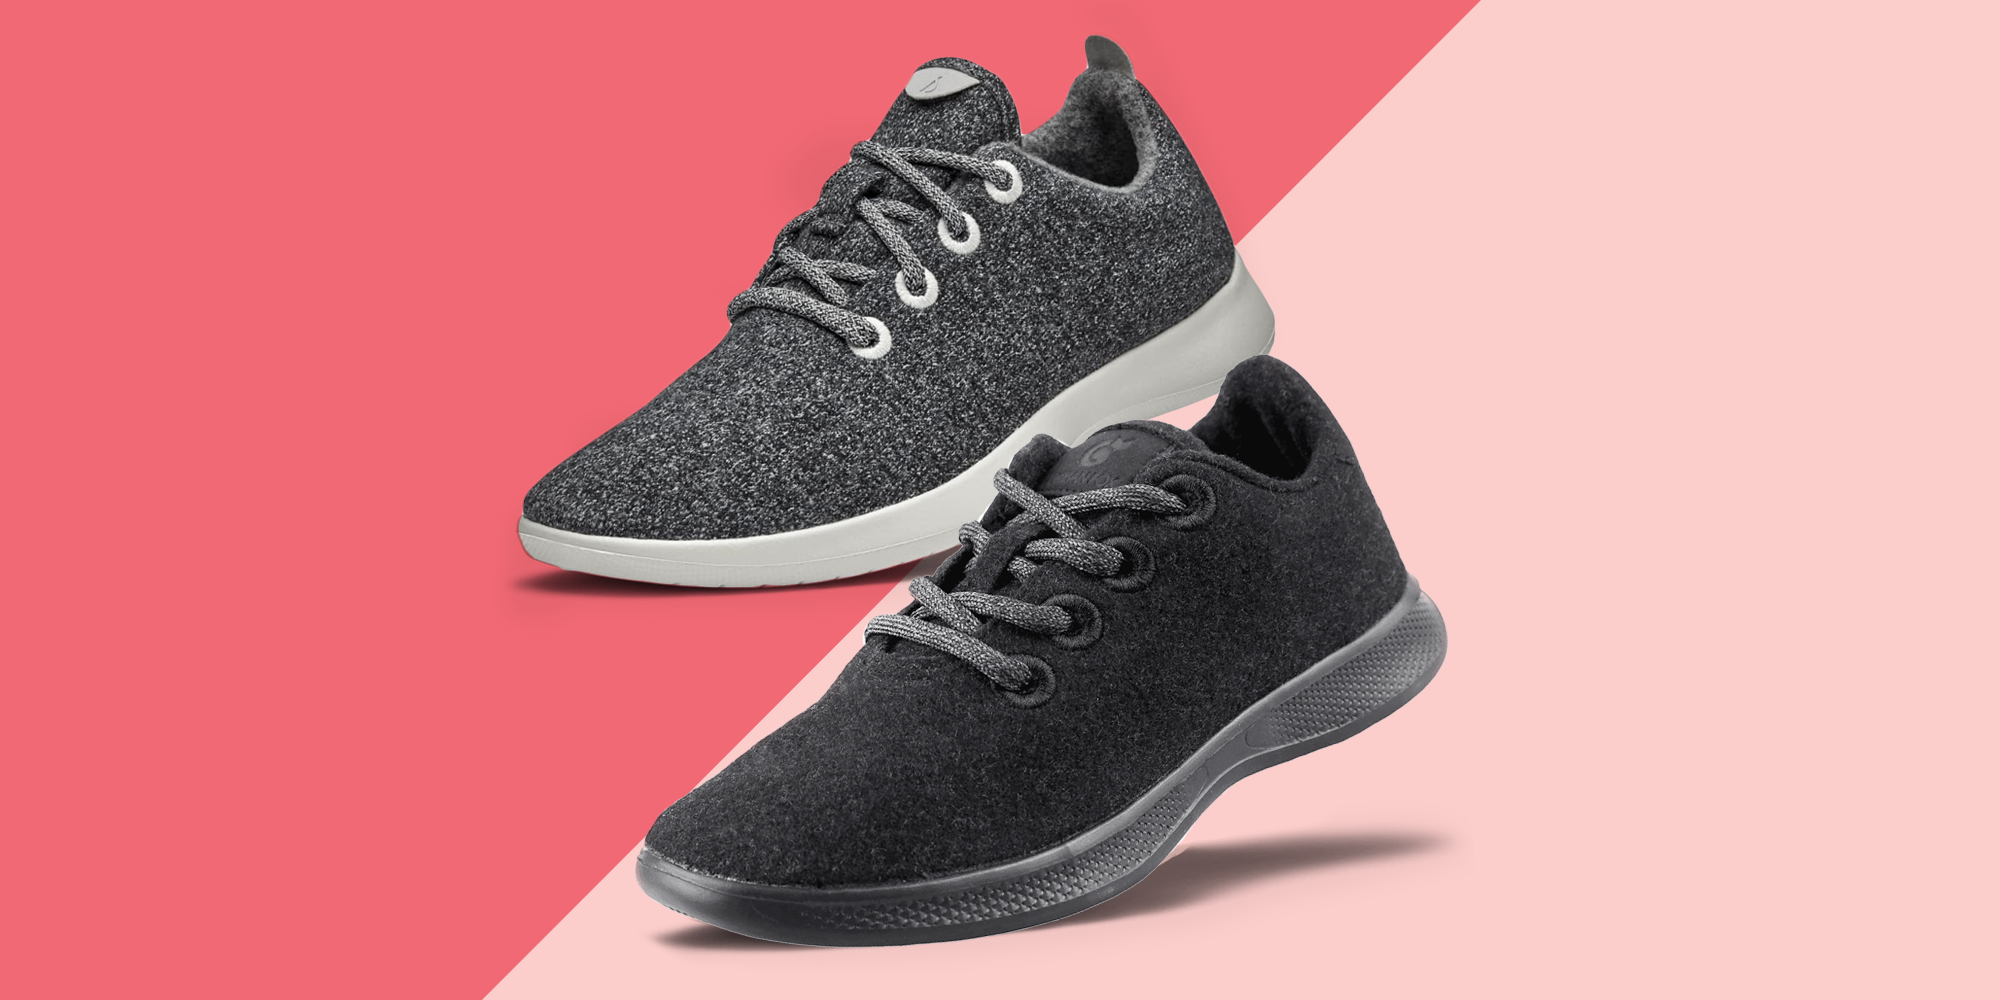 How Do Amazon's Allbirds Knockoffs Compare to the Real Thing?